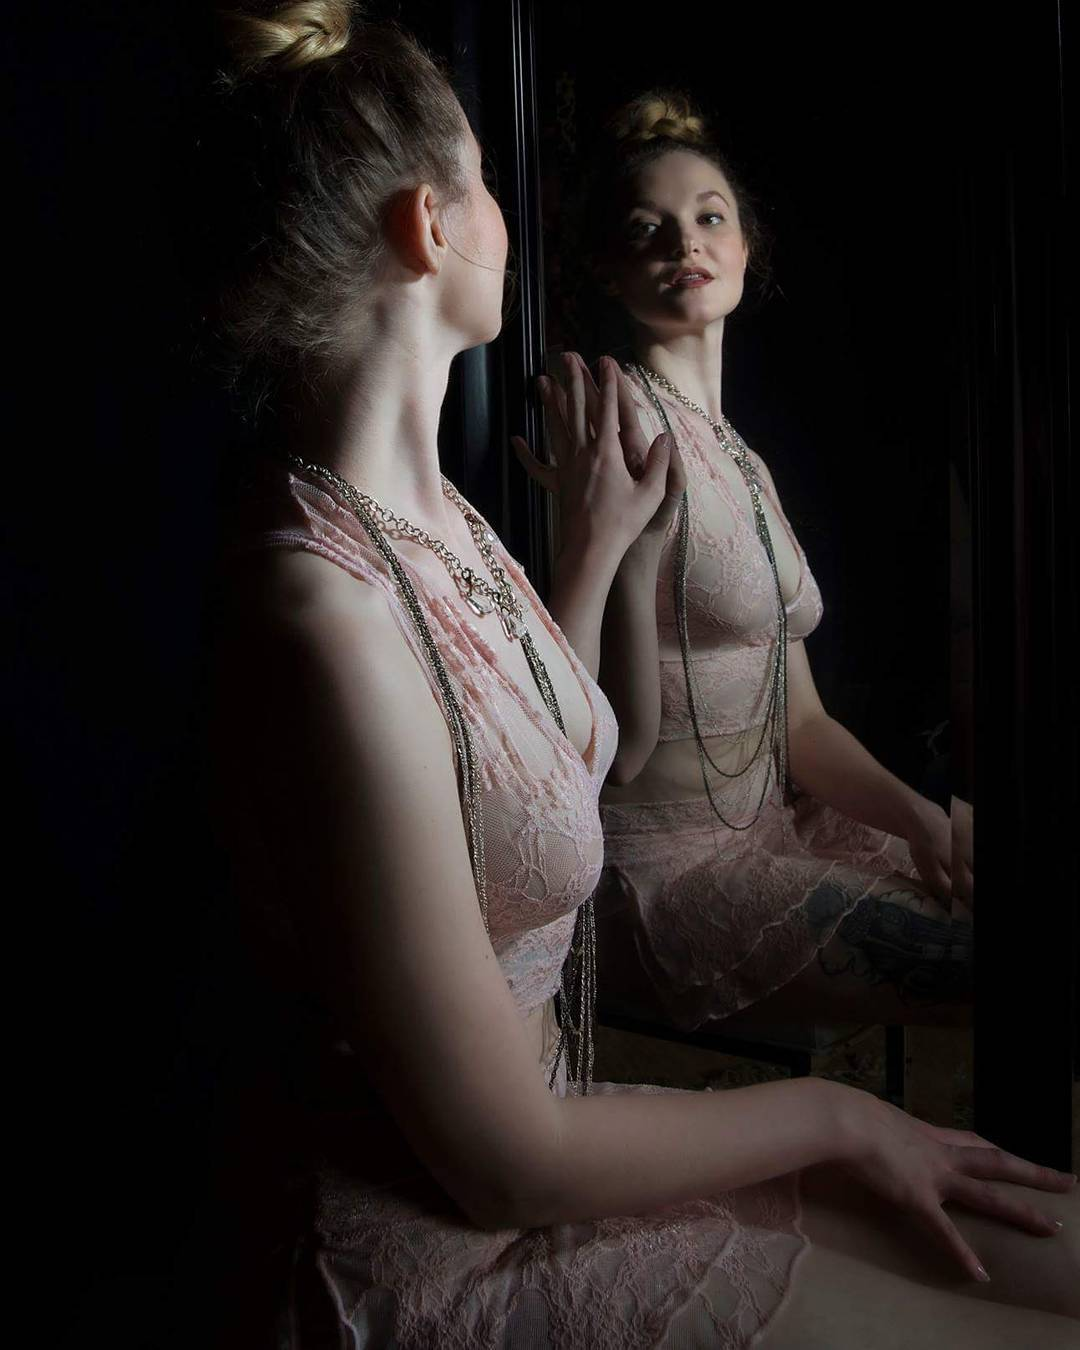 Model wearing light pink lacy lingerie from the curated collection from VaVaVooom in Asheville NC